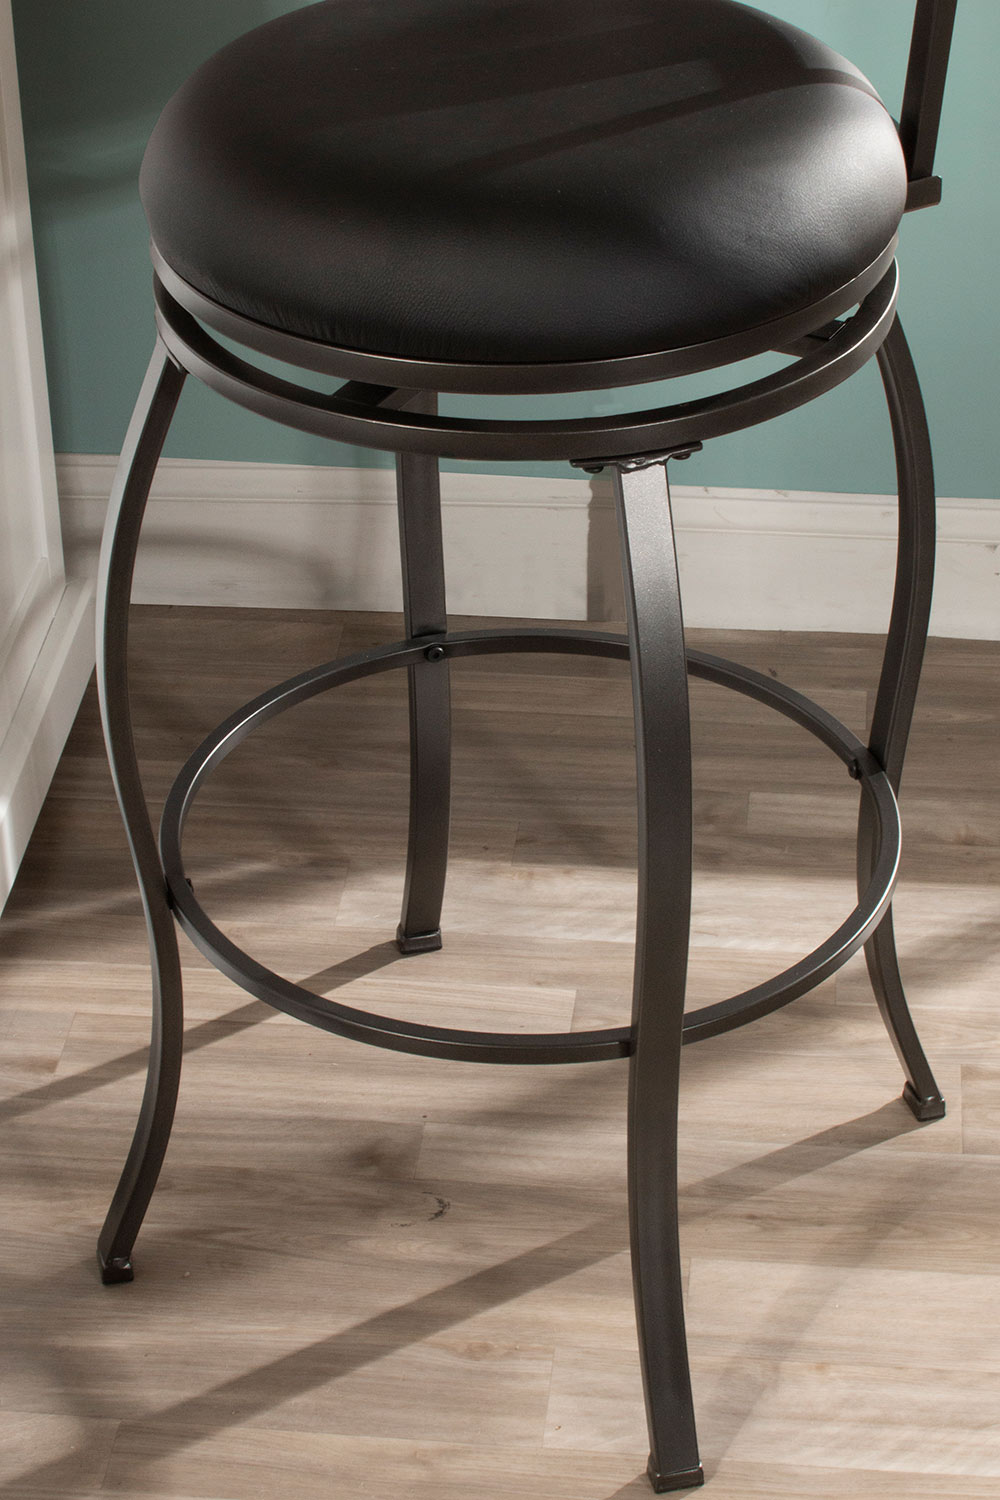 Hillsdale Stockport Swivel Counter Height Stool - Pewter